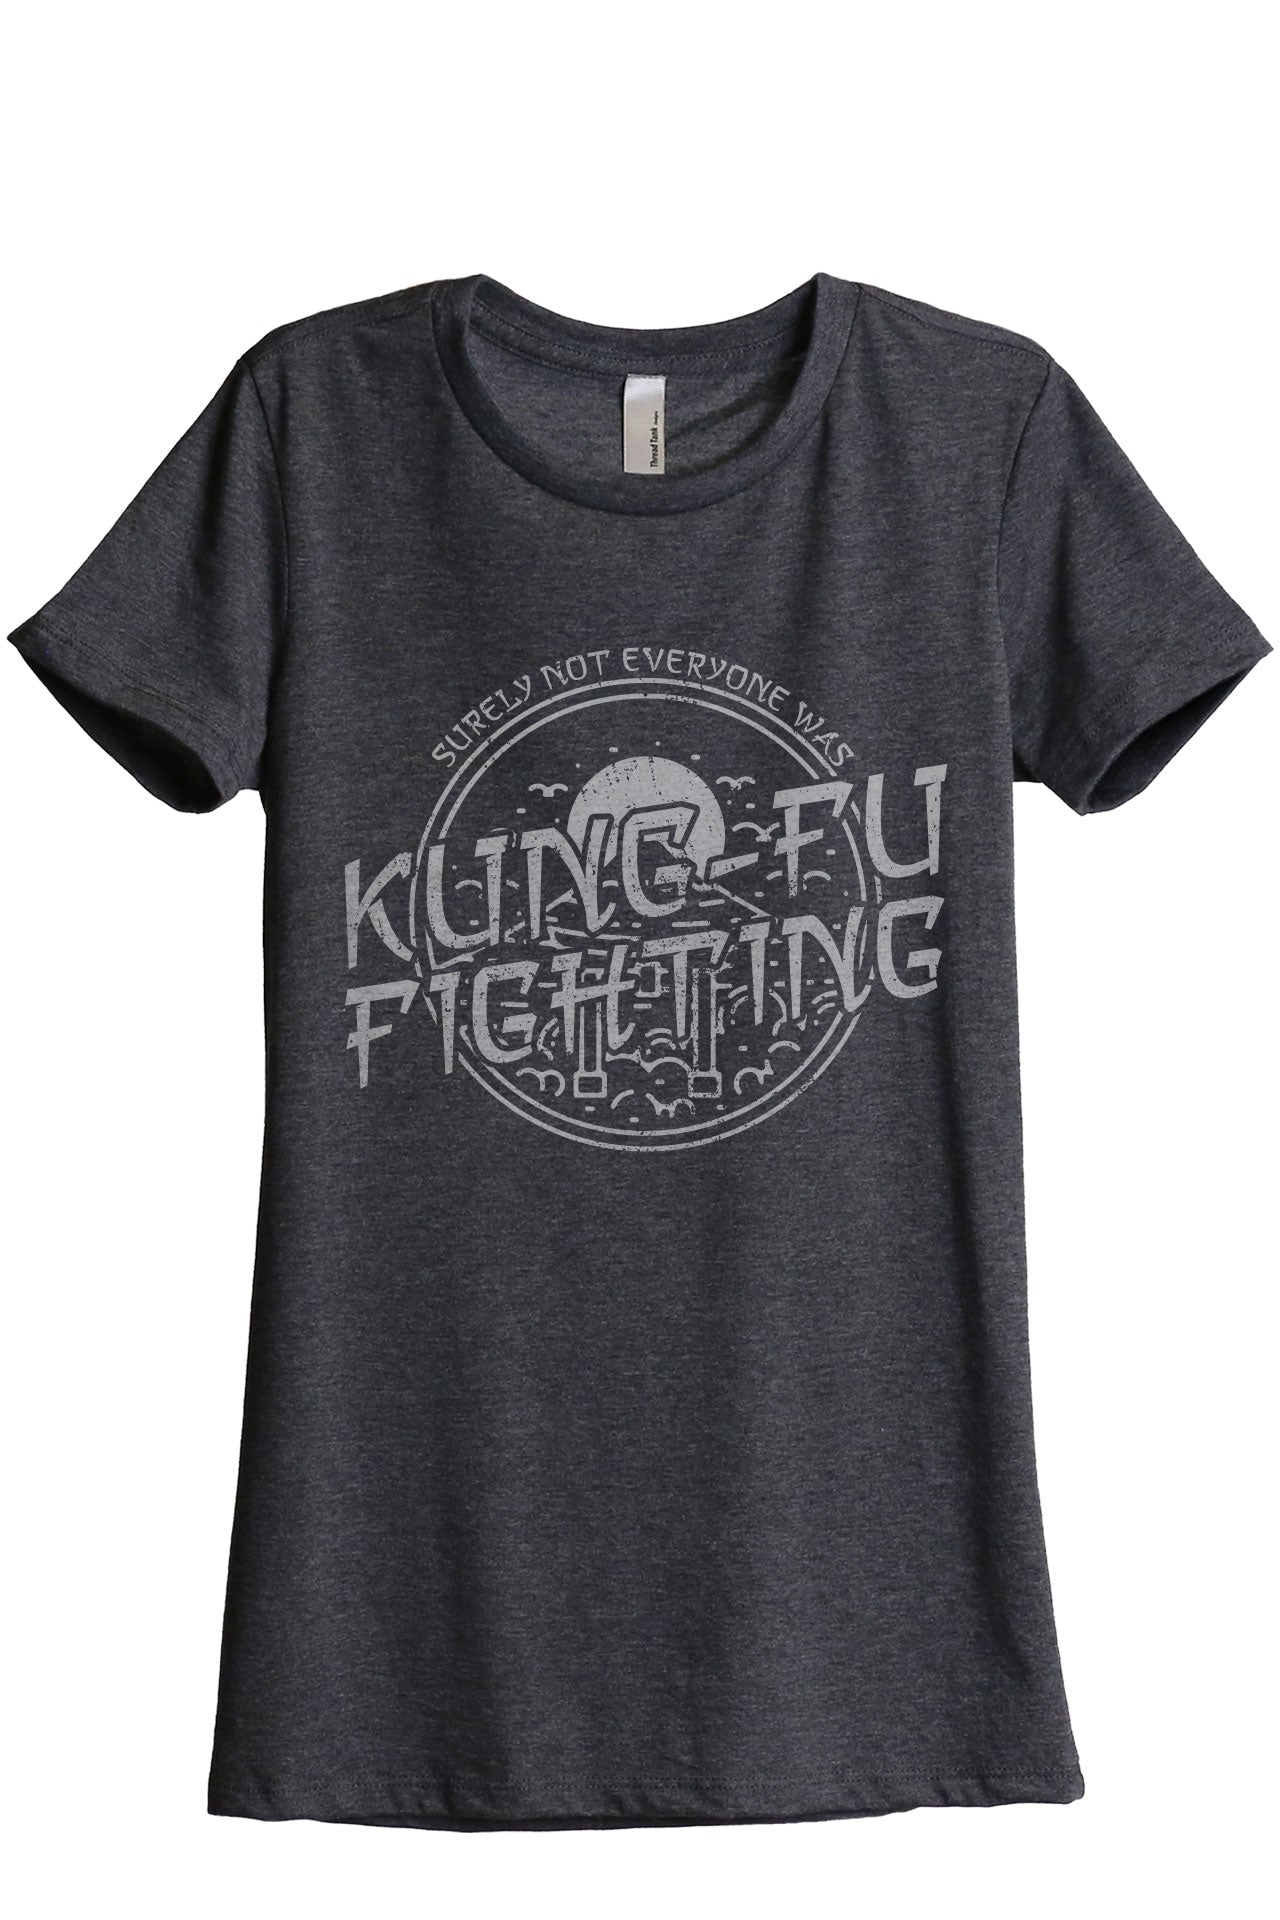 Surely Not Everyone Was Kung Fu Fighting Women's Relaxed Crewneck T-Shirt Top Tee Charcoal Grey